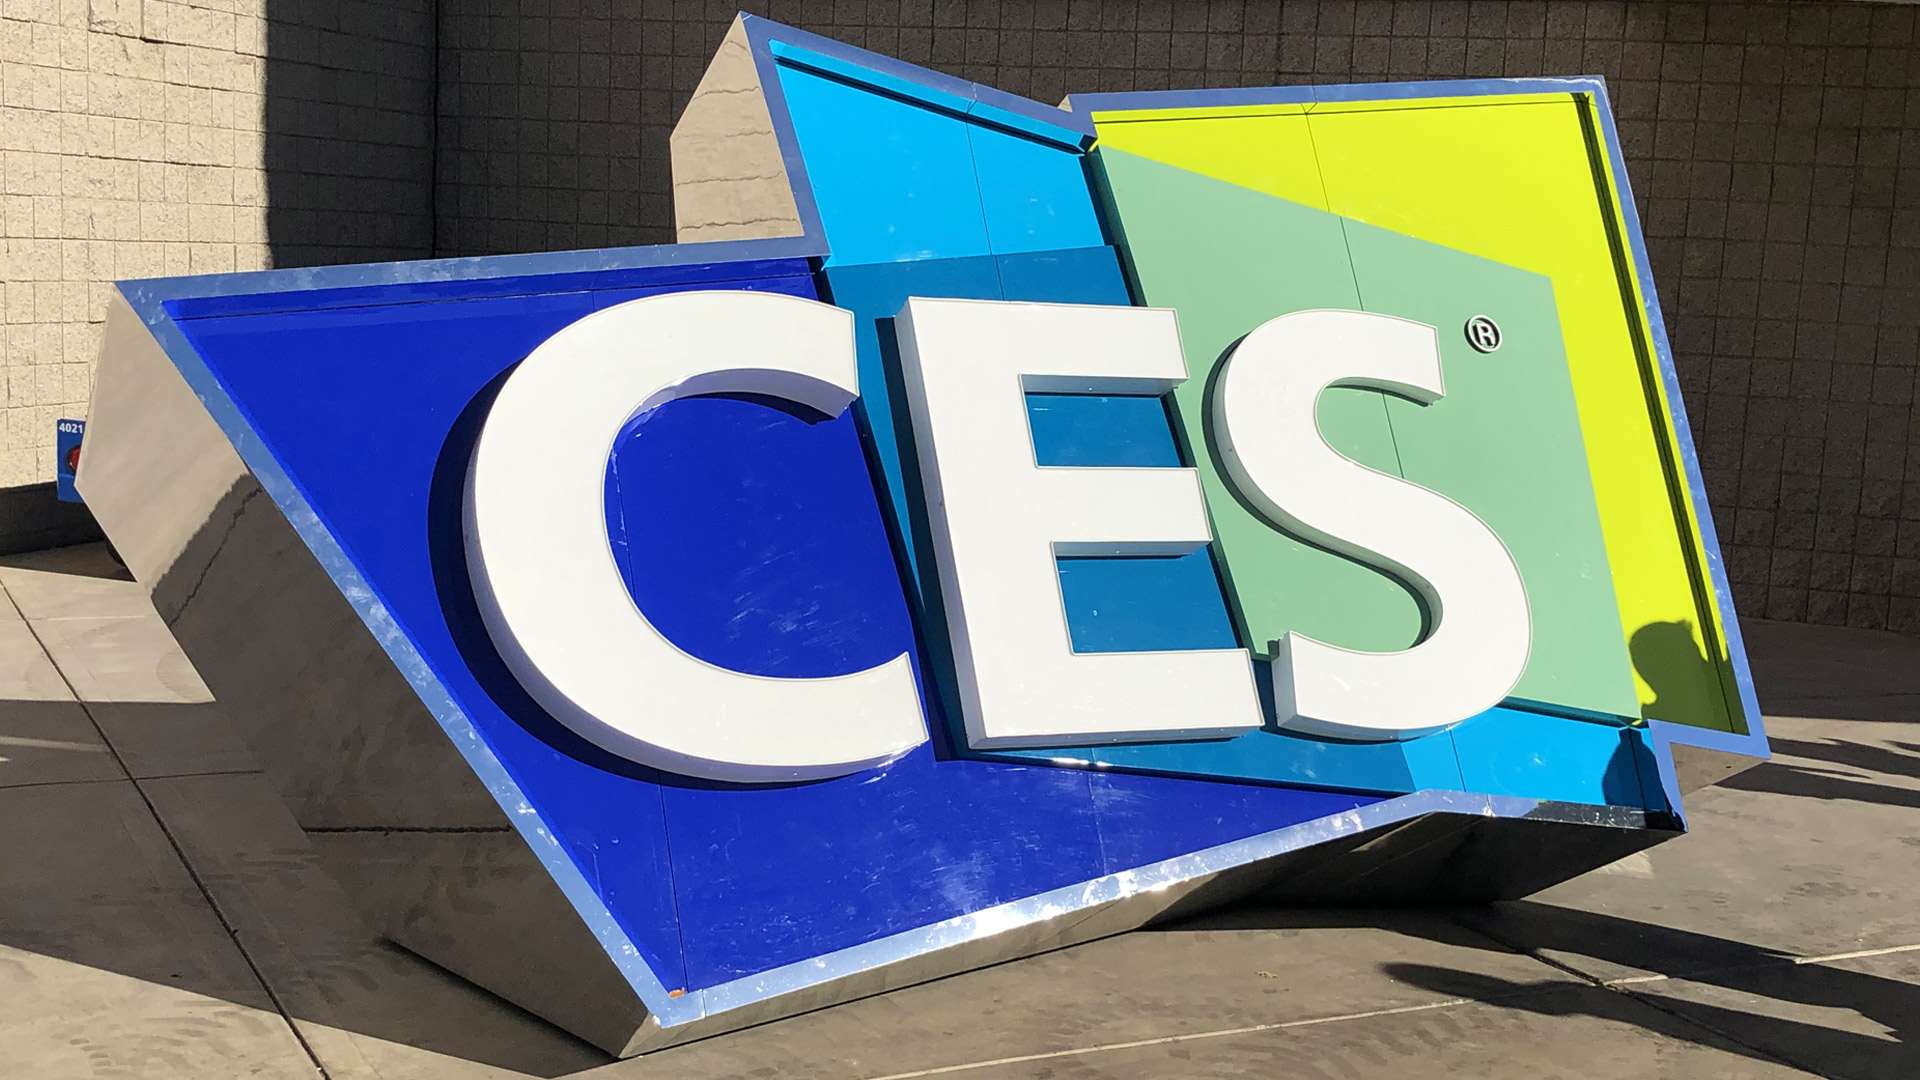 CES 2019: The Best, Worst and All The Tech